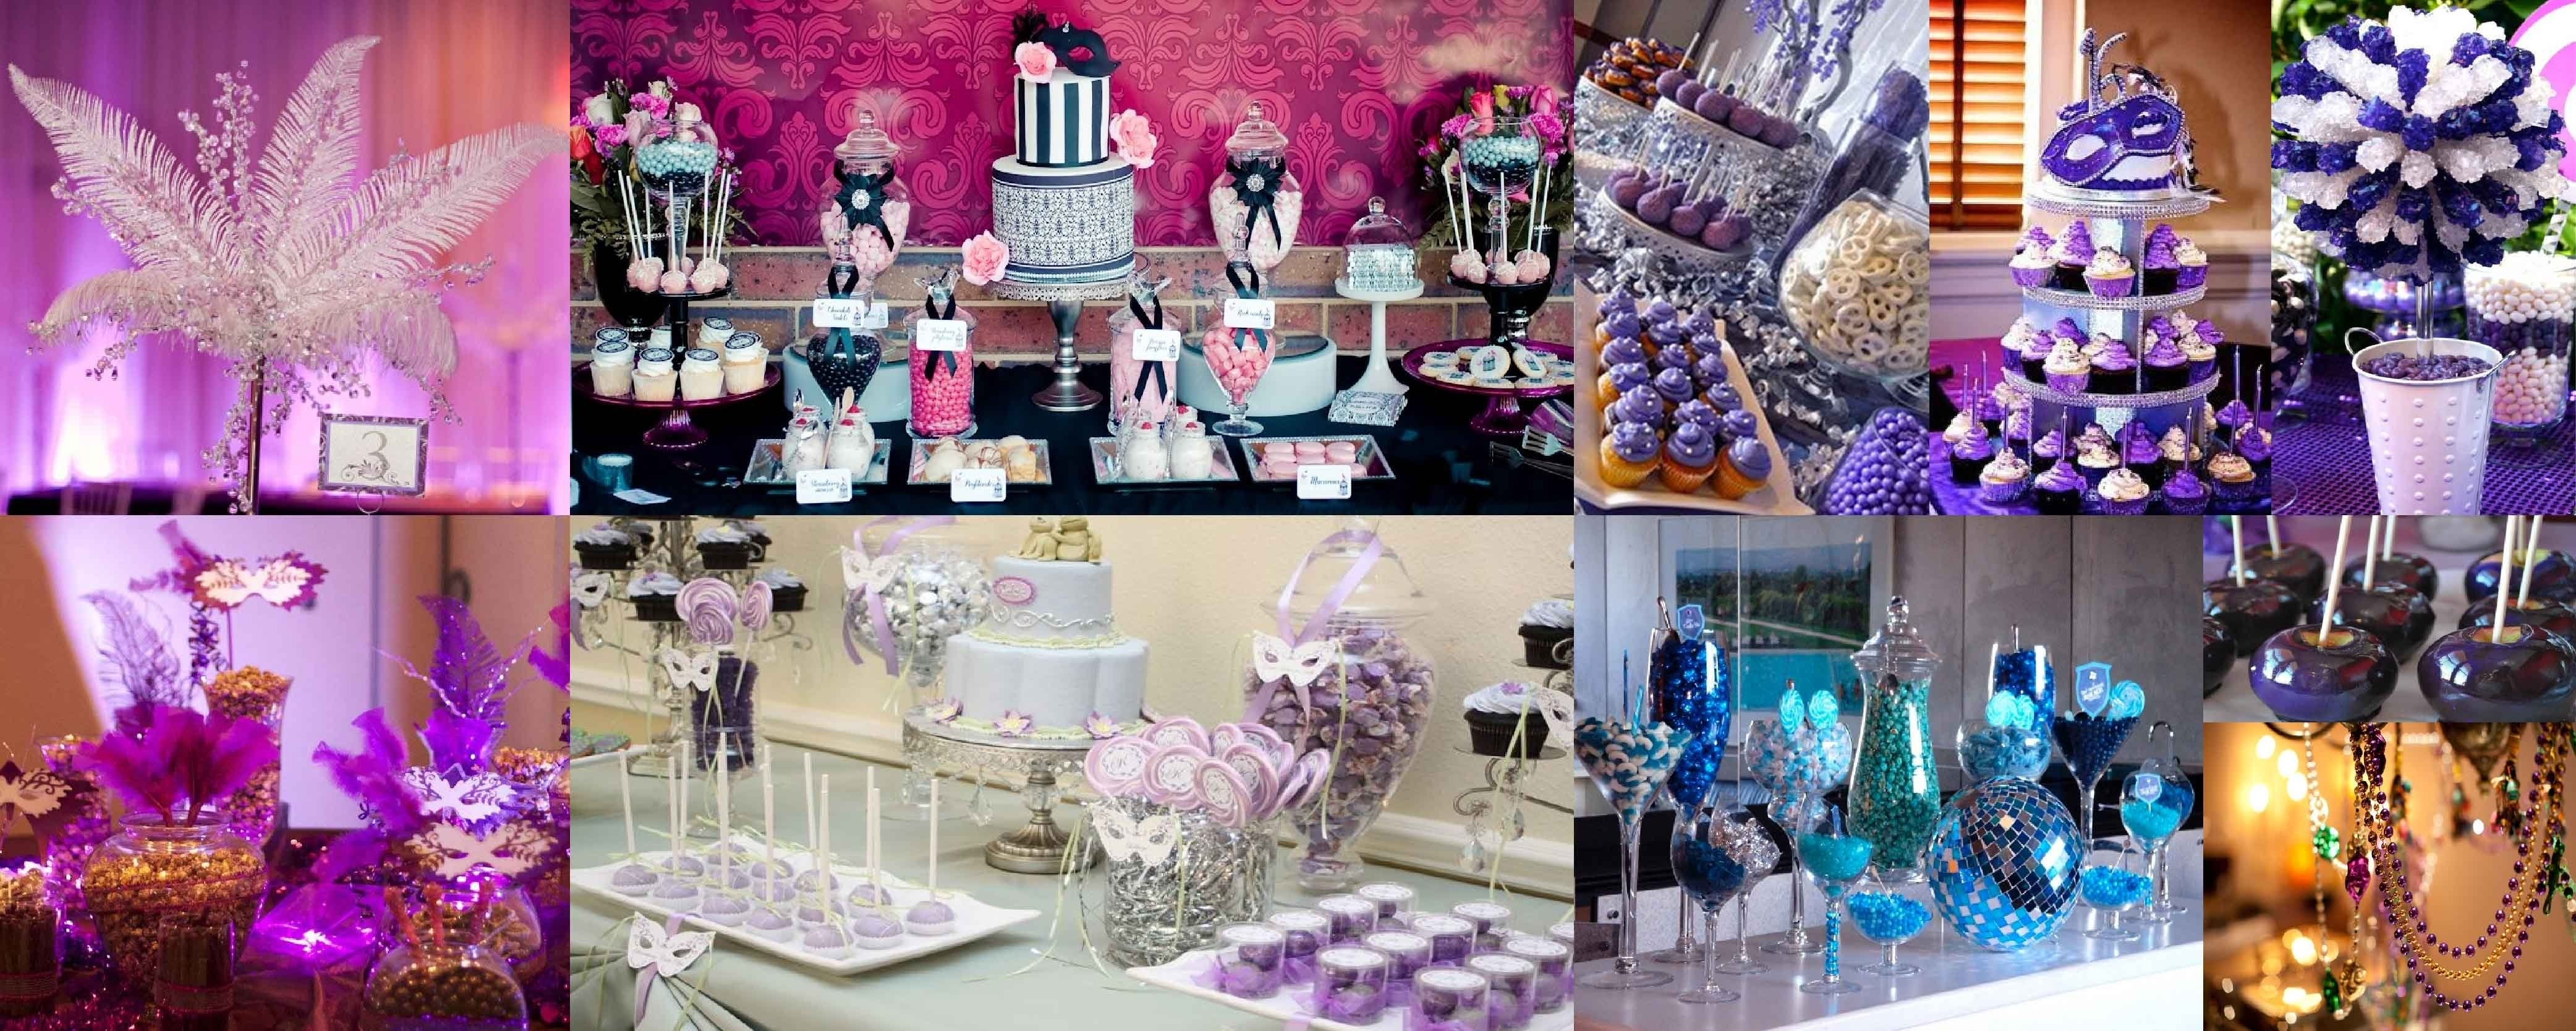 10 Stylish Masquerade Party Ideas For Adults masquerade party decorations ideas google search 35th birthday 2020